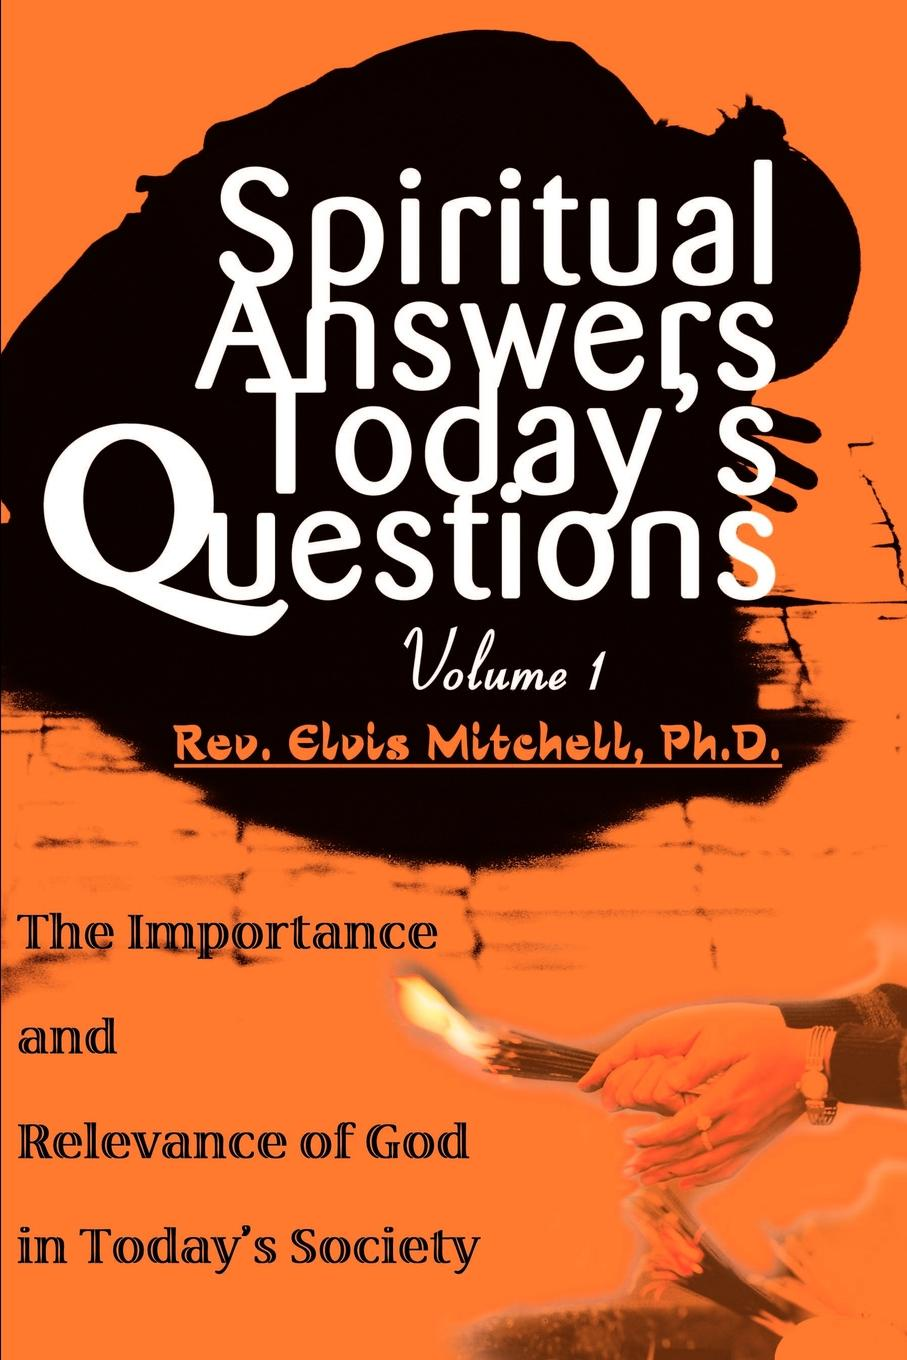 Elvis F. Mitchell Spiritual Answers Today's Questions. The Importance and Relevance of God in Today's Society: Volume One plumbing questions and answers pdf